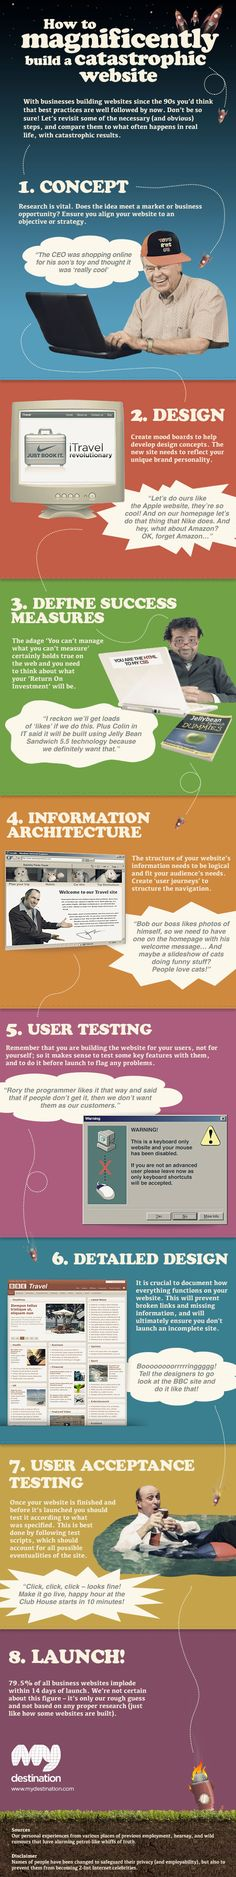 How to magnificently build a catastrophic website #infographic